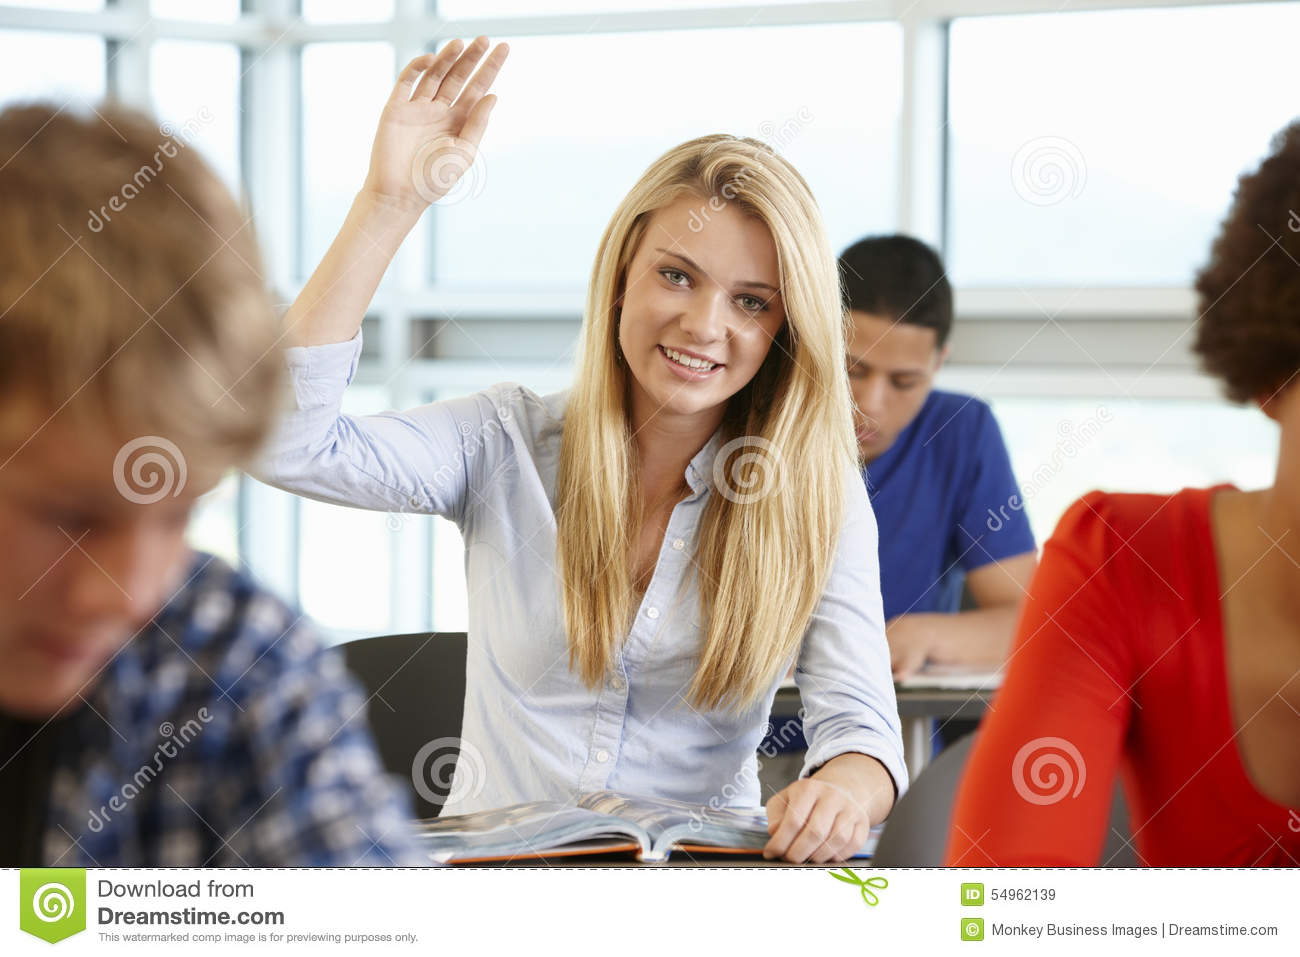 Student Asking Question In Class Stock Image - Image: 54962139